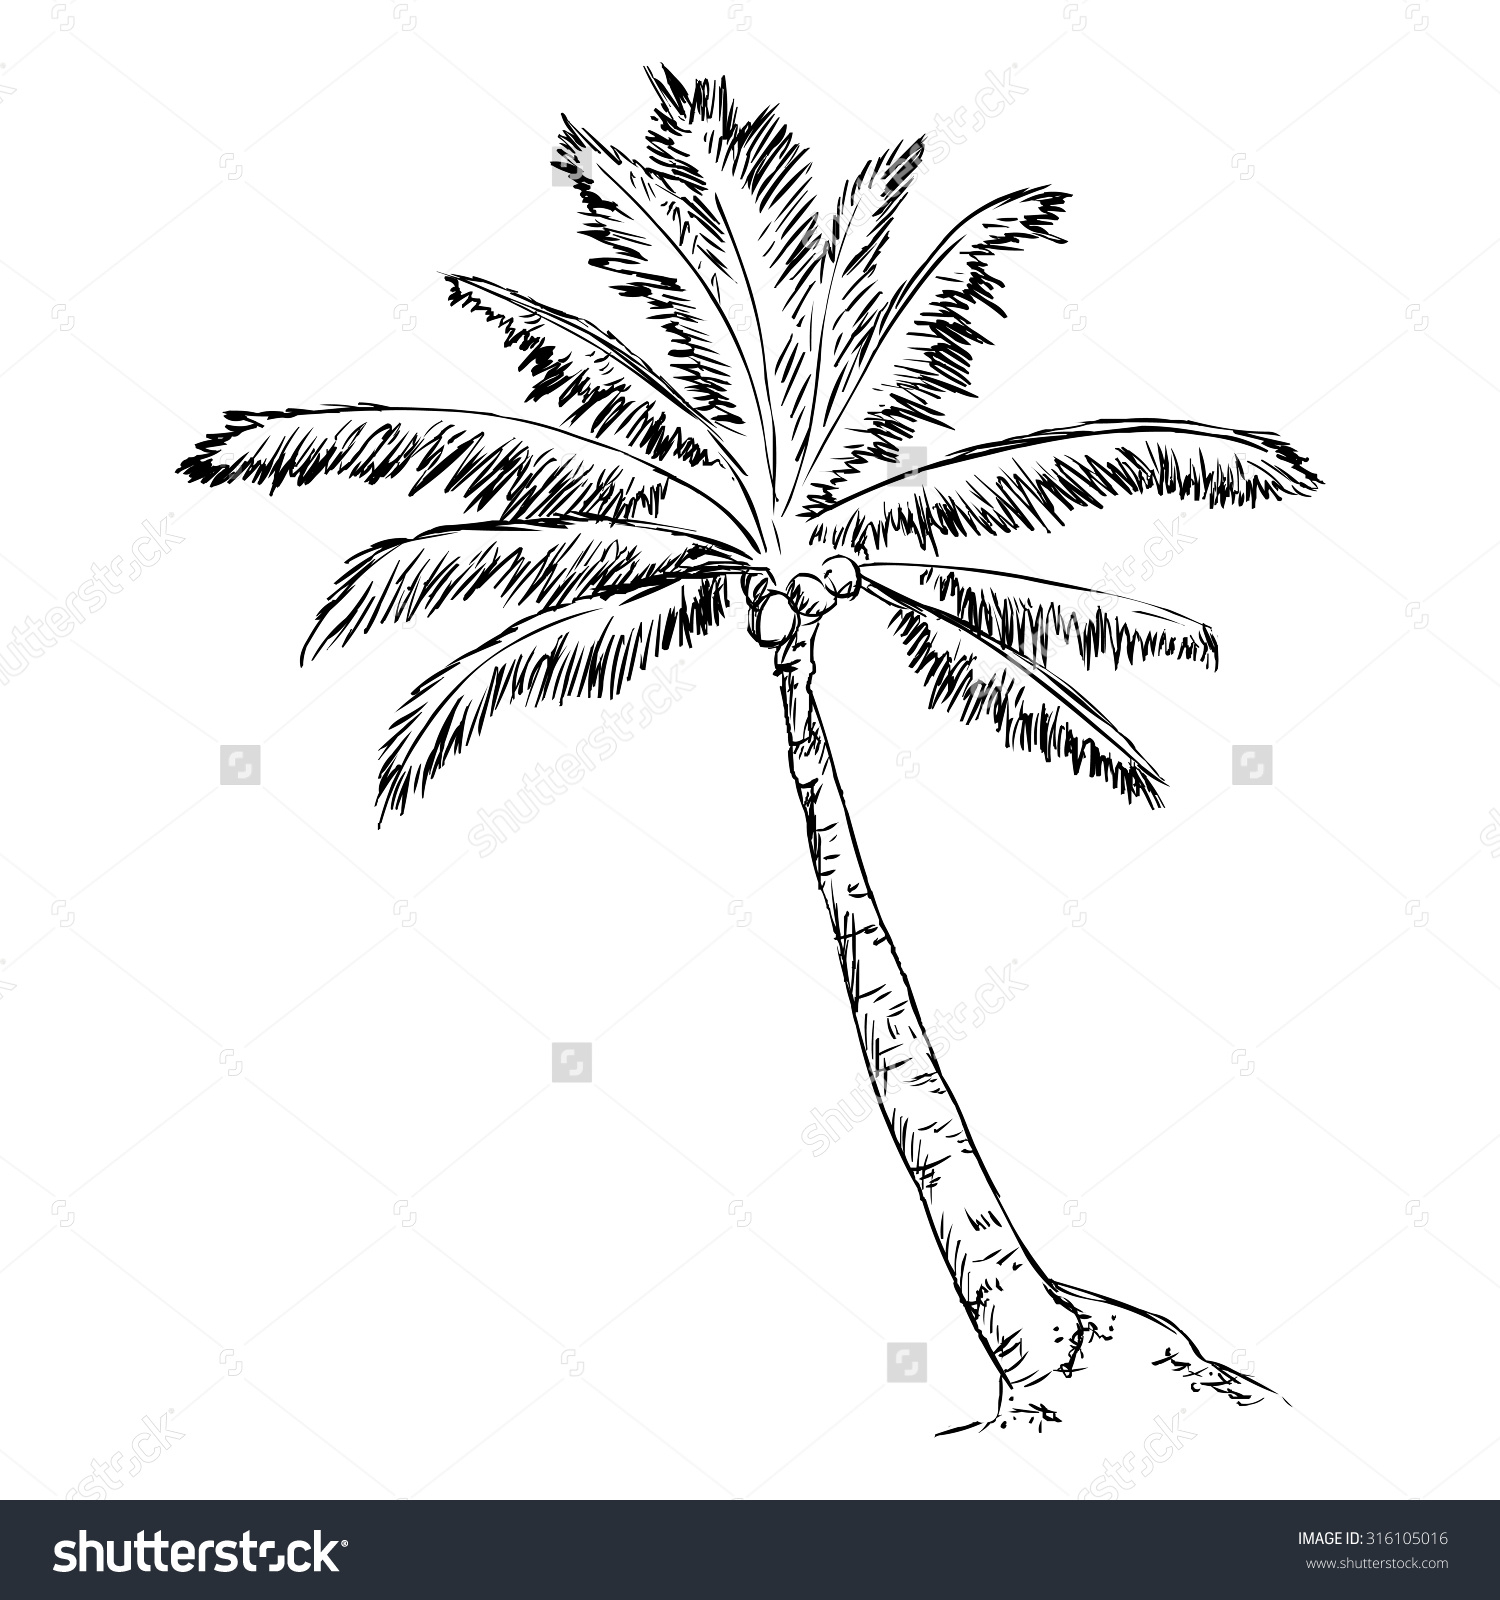 1500x1600 Monumental Palm Tree Outline Drawing Vector Single Sketch Stock